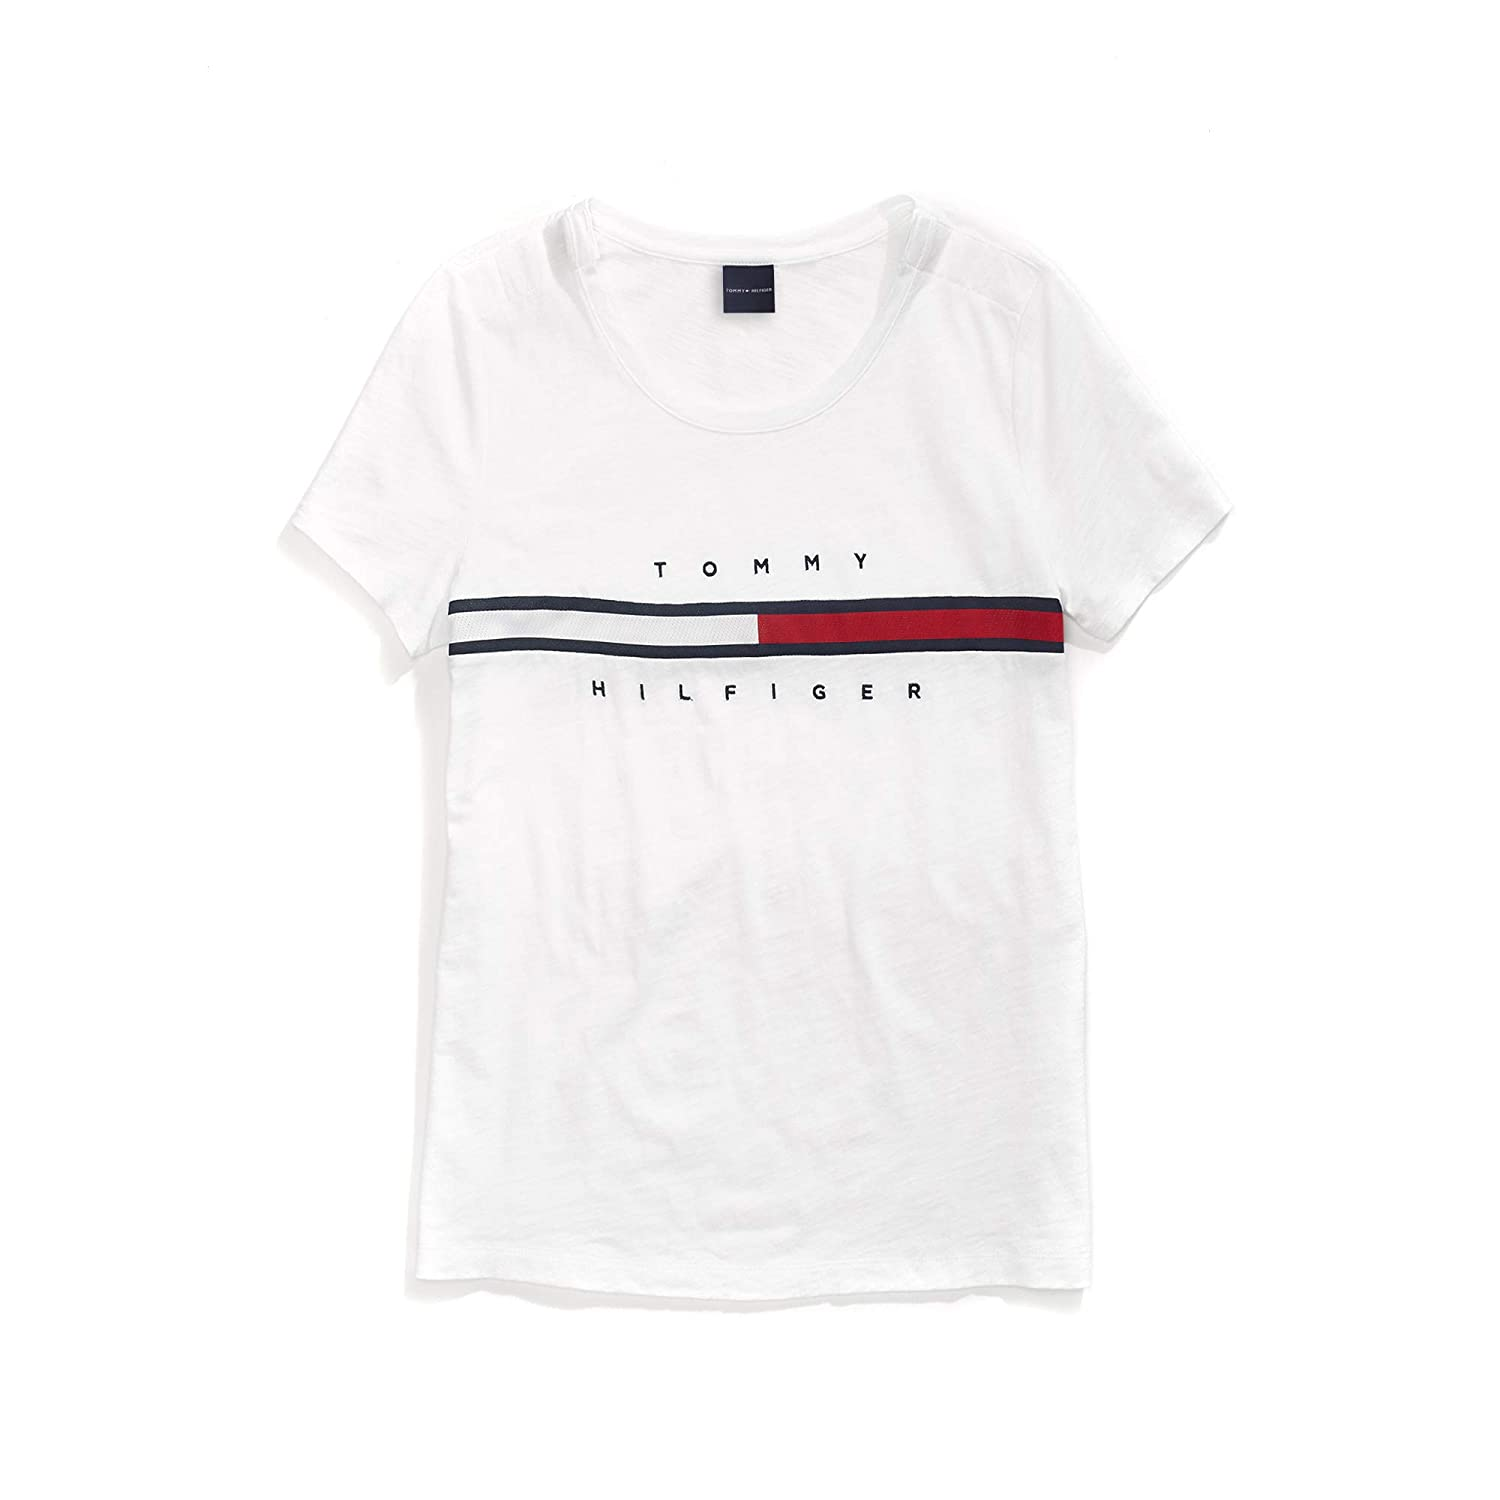 b7631db07 Tommy Hilfiger Women's T Shirt with Magnetic Closure Signature Stripe Tee  at Amazon Women's Clothing store: